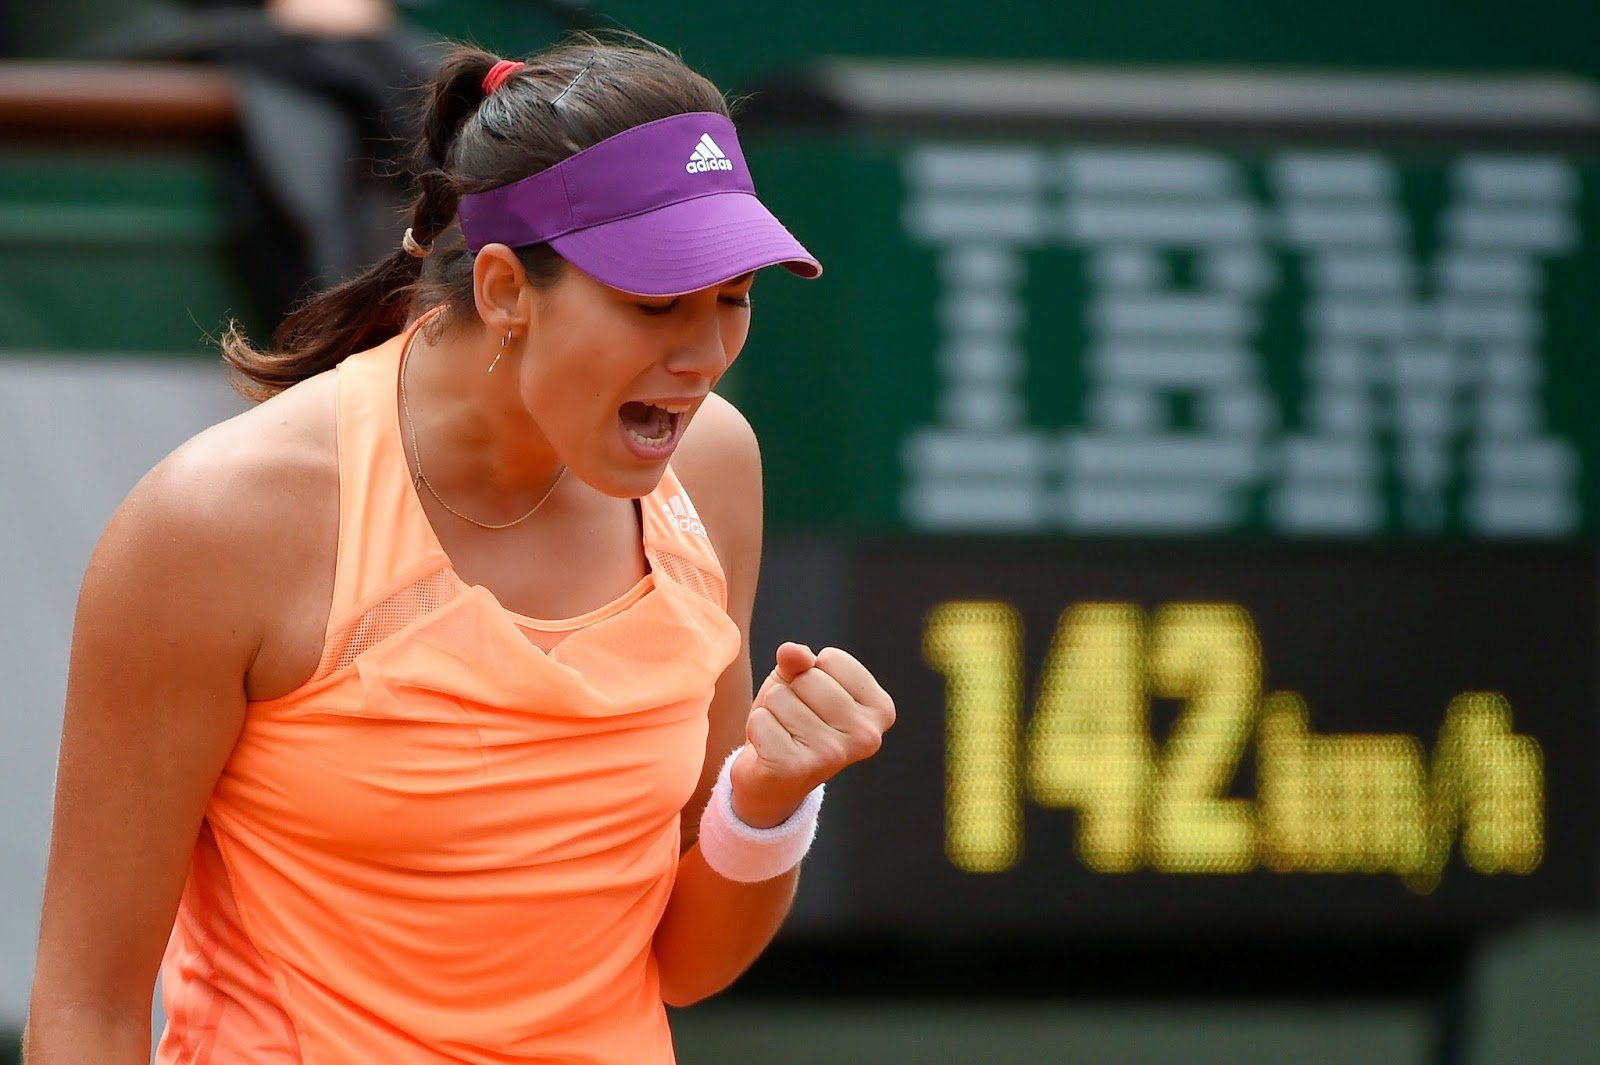 French Open, French Open 2014, Garbine Muguruza, Garbine Muguruza Photo, Maria Sharapova, Maria Sharapova Photo, Paris, Quarter final match, Sports, Tennis, Tennis Players, Women Tennis Players,